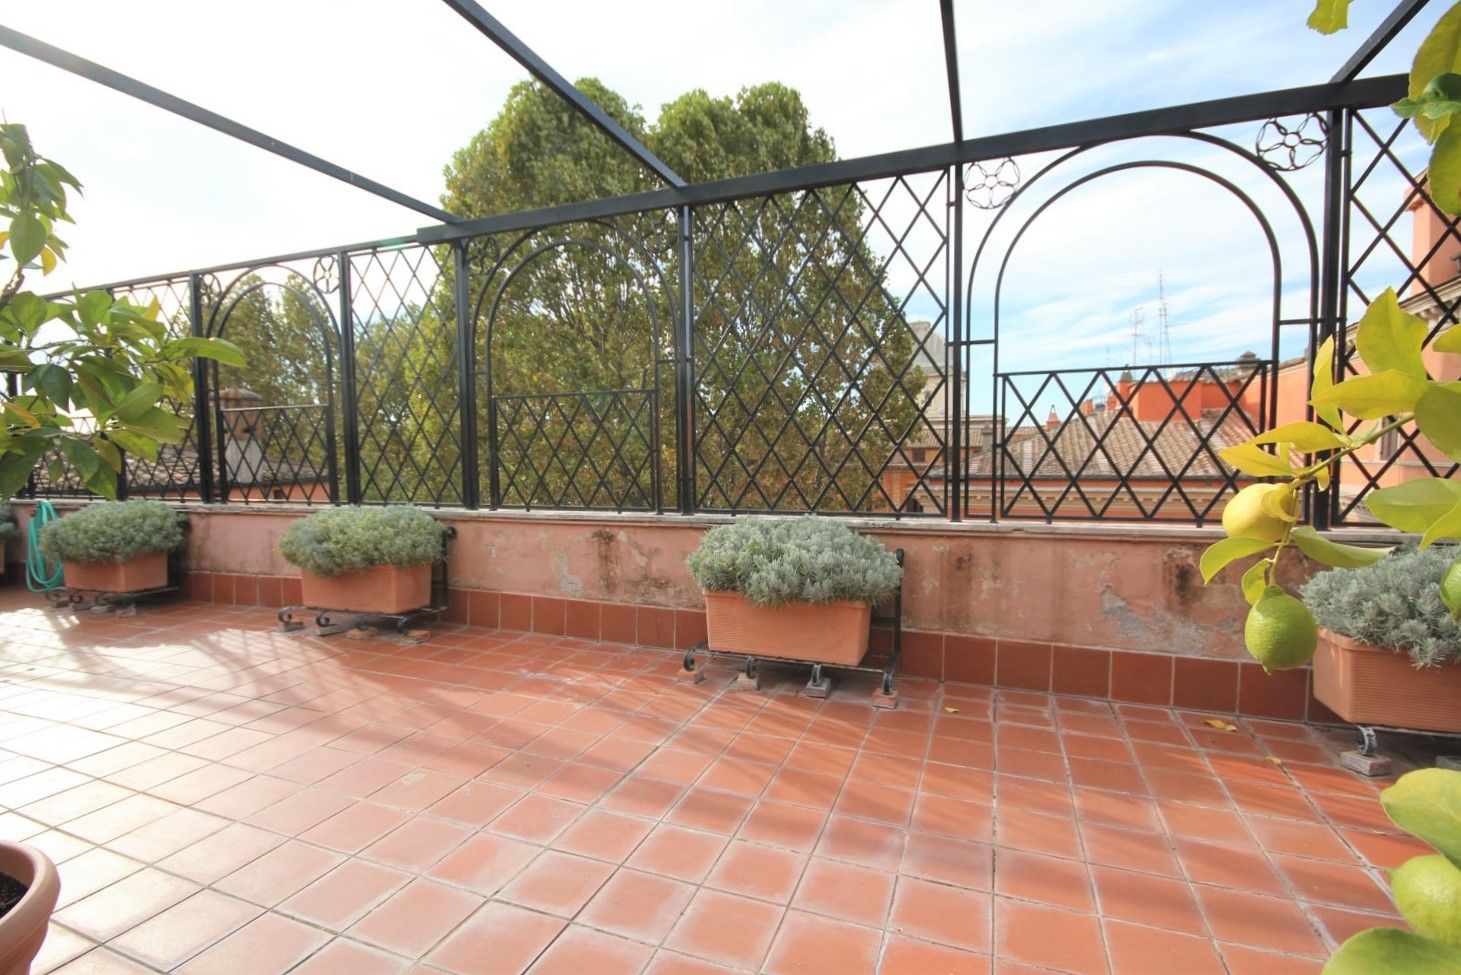 Luxury Penthouse for Rent Rome Piazza Navona: 430 m2  with Panoramic Terrace